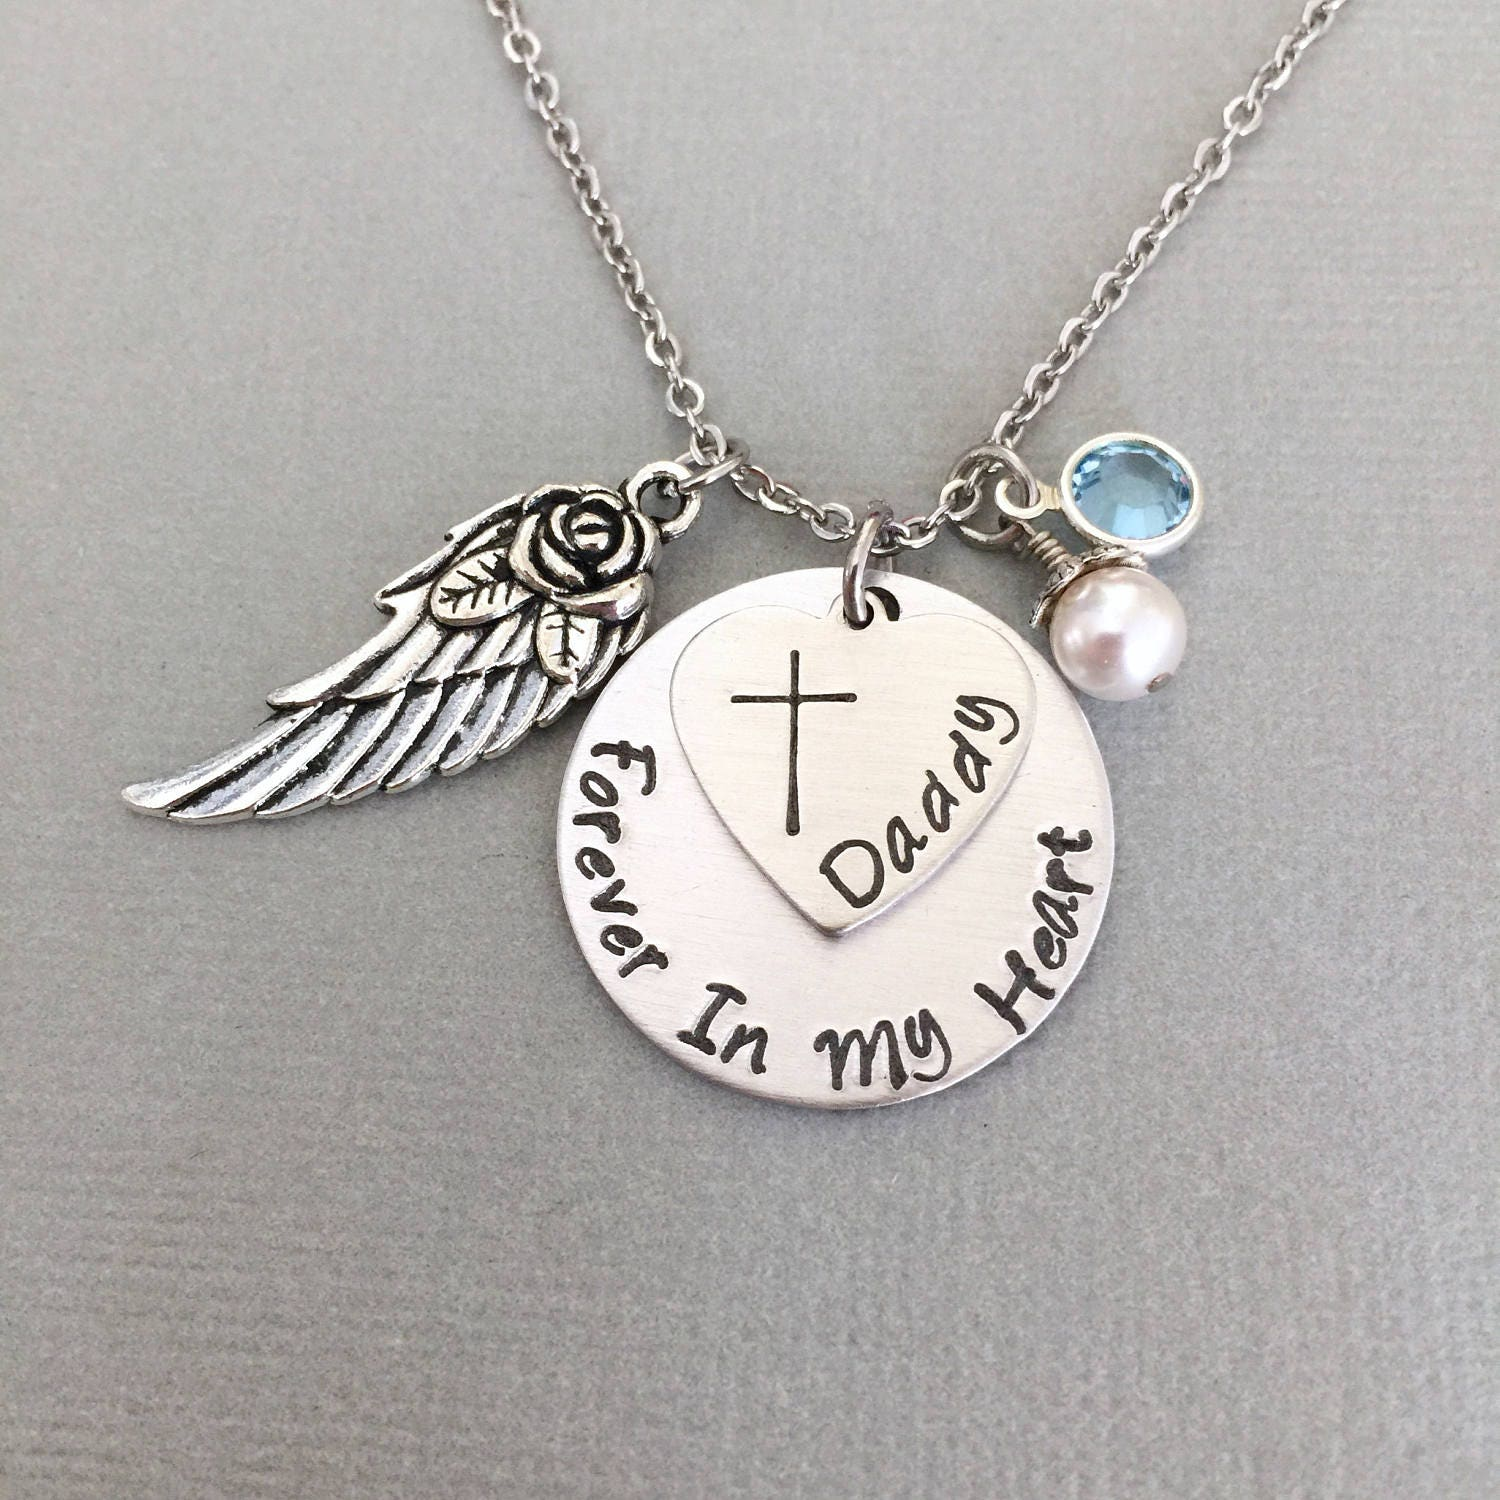 Personalized Memorial Necklace Angel Wing Remembrance Etsy